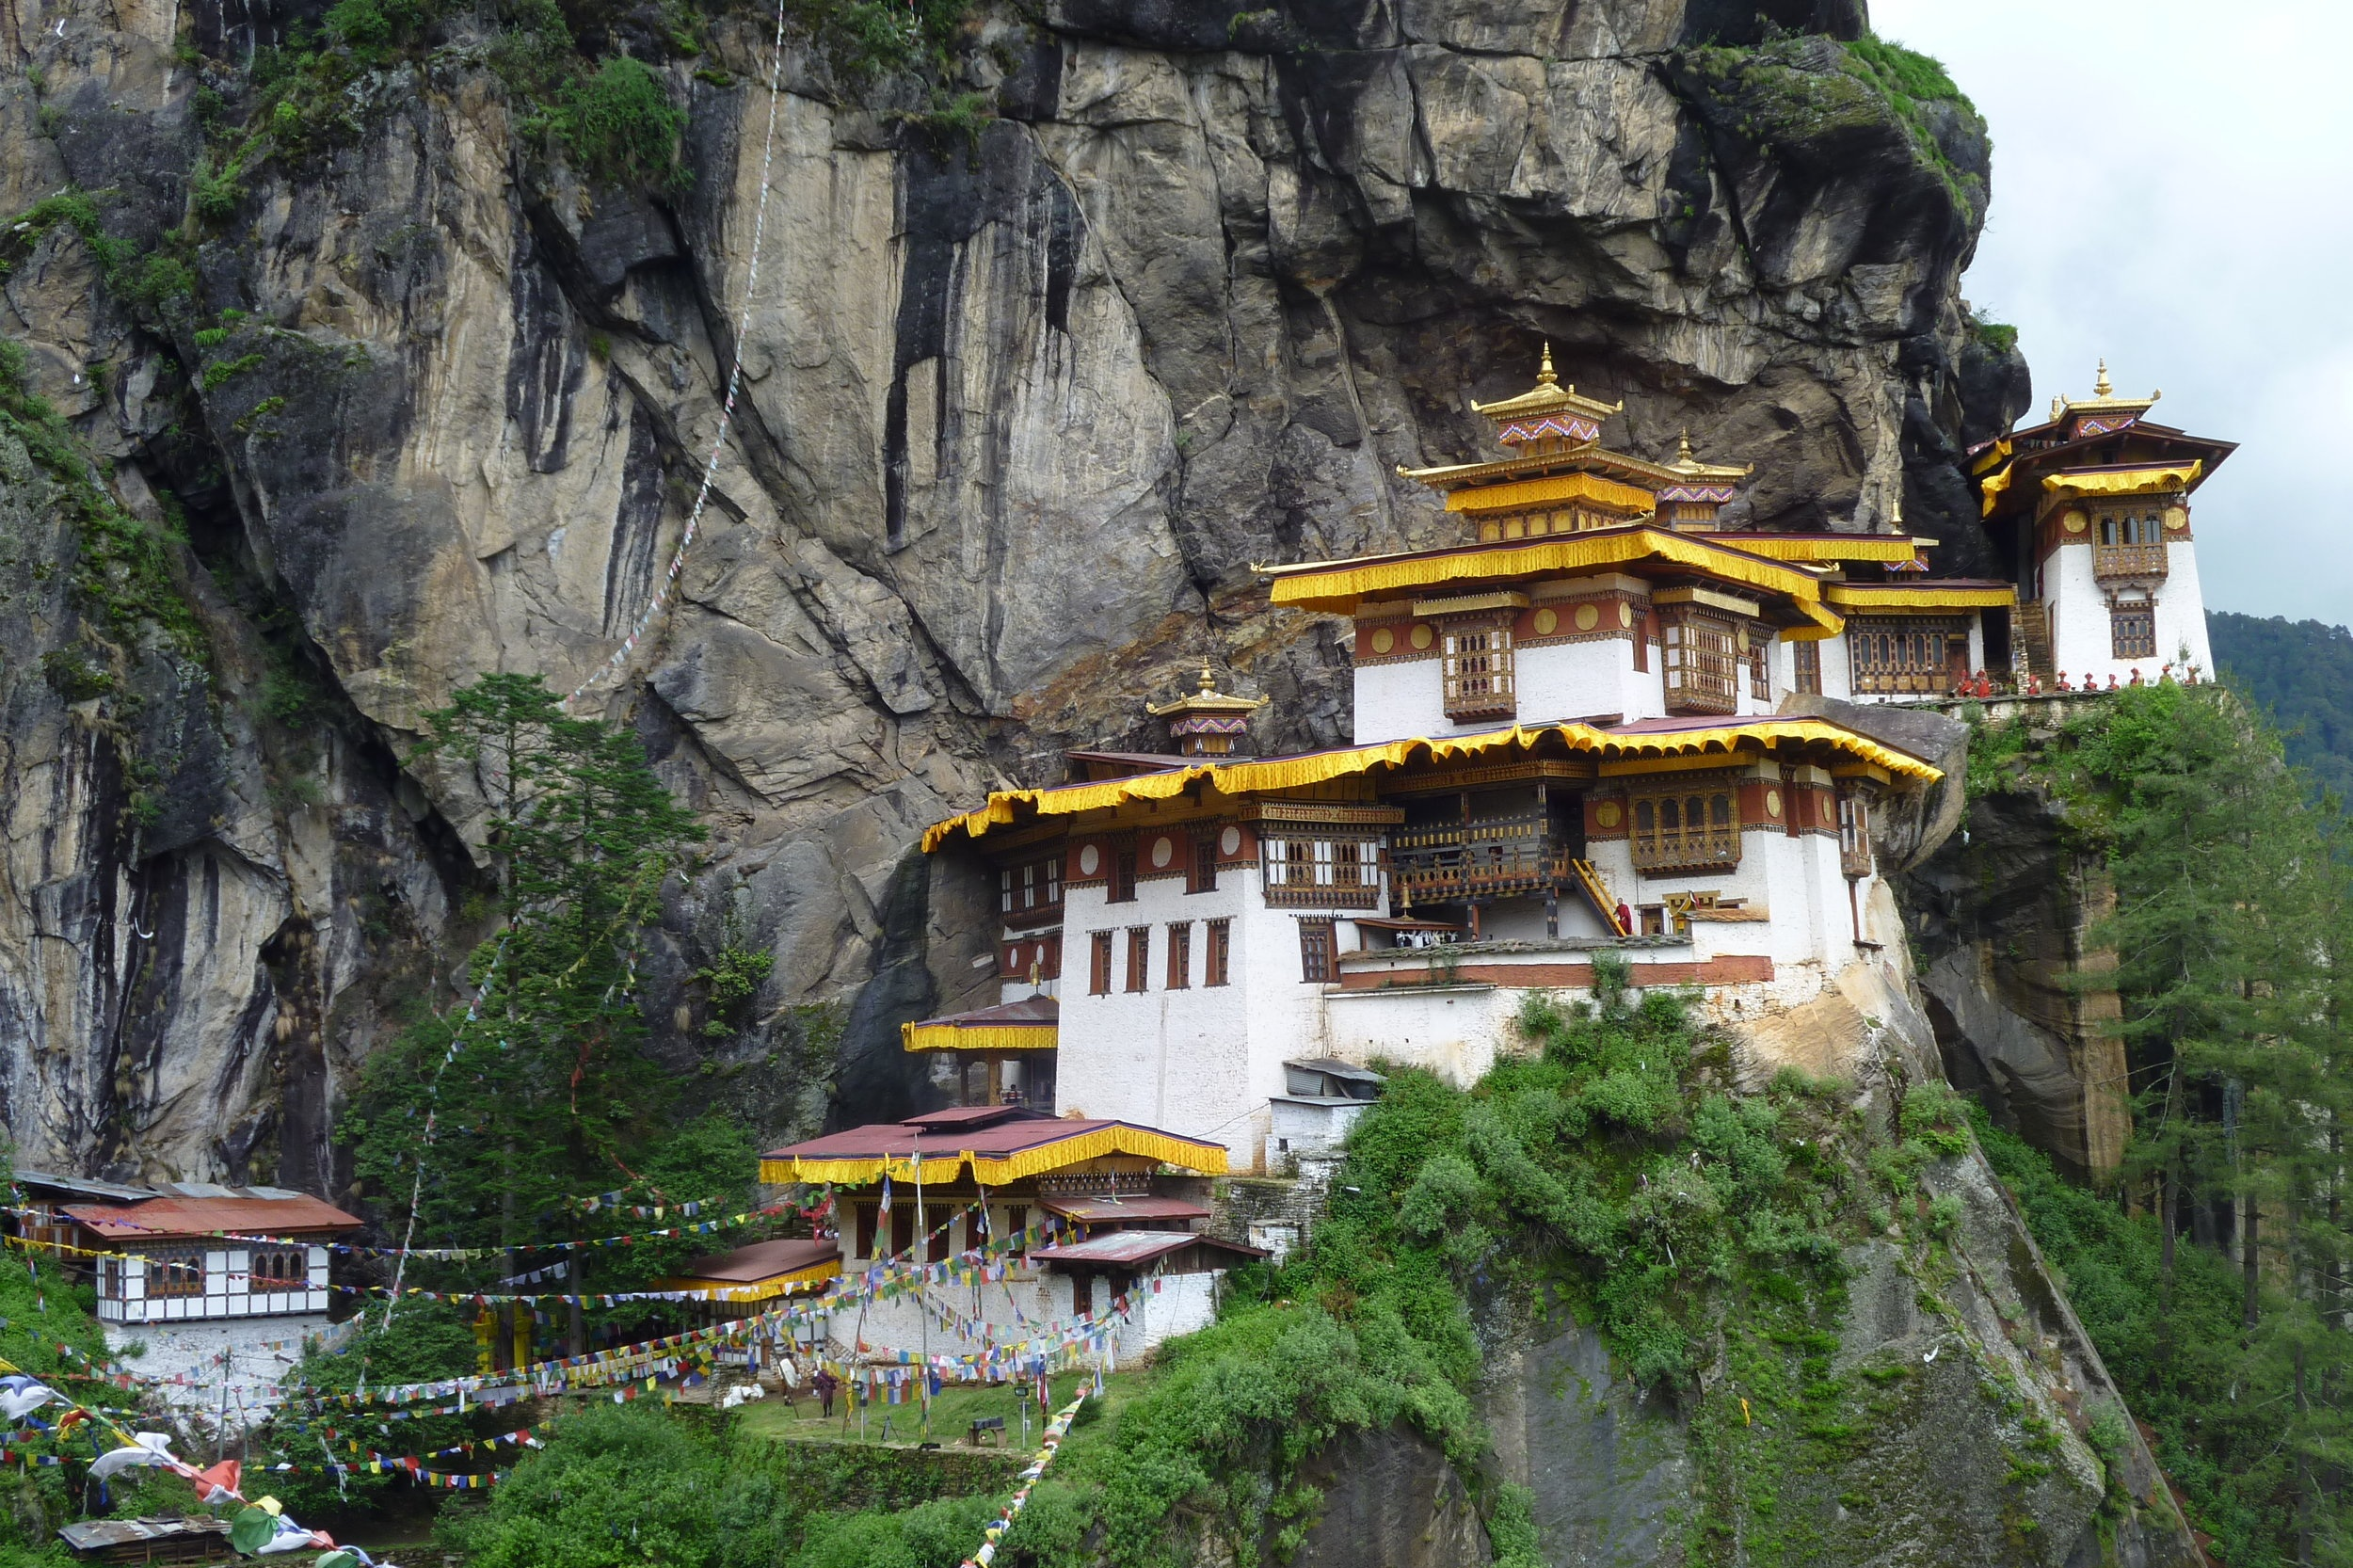 Tiger's Nest - After visiting the monasteries and temples in Paro, climb up to this cliff-hugging retreat that was the abode of Padmasambhava in the 8th century.